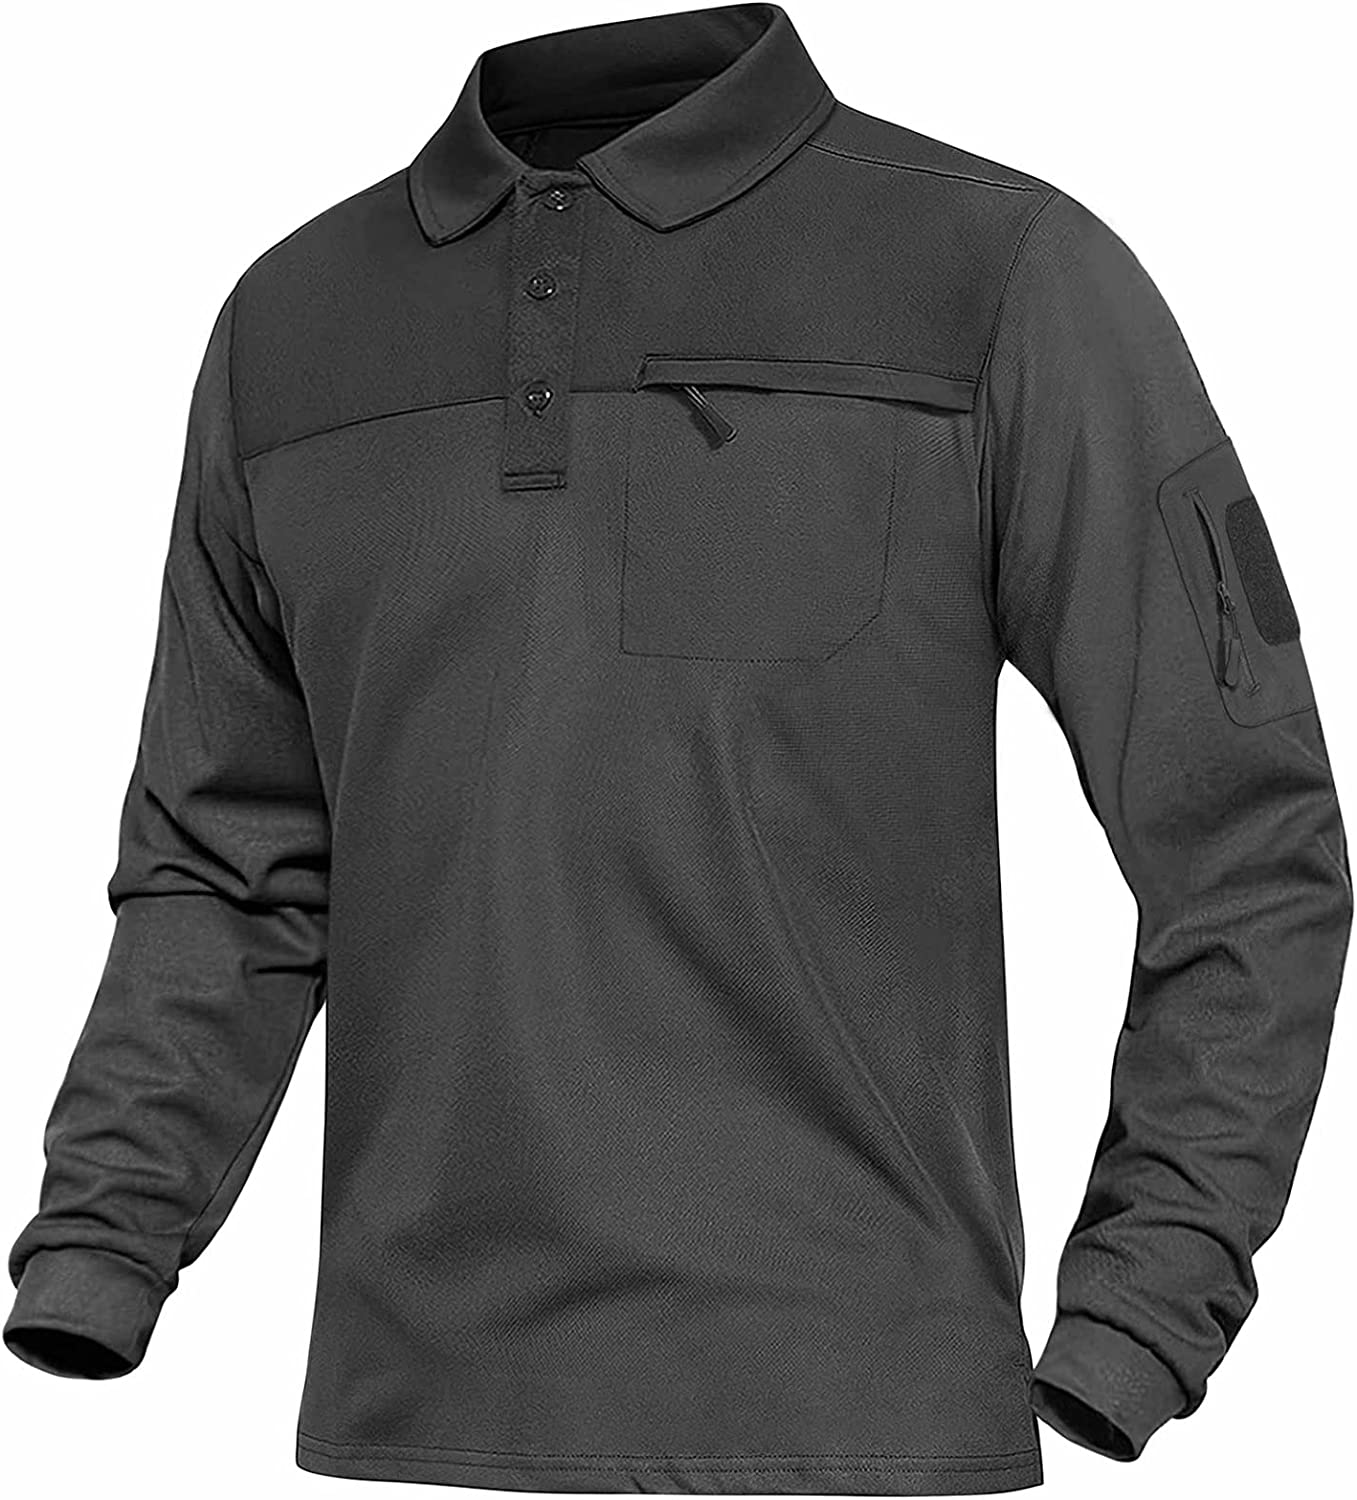 Regular discount MAGNIVIT Men's Tactical Polo Special price for a limited time Shirt Pullover Long Sleeve Military